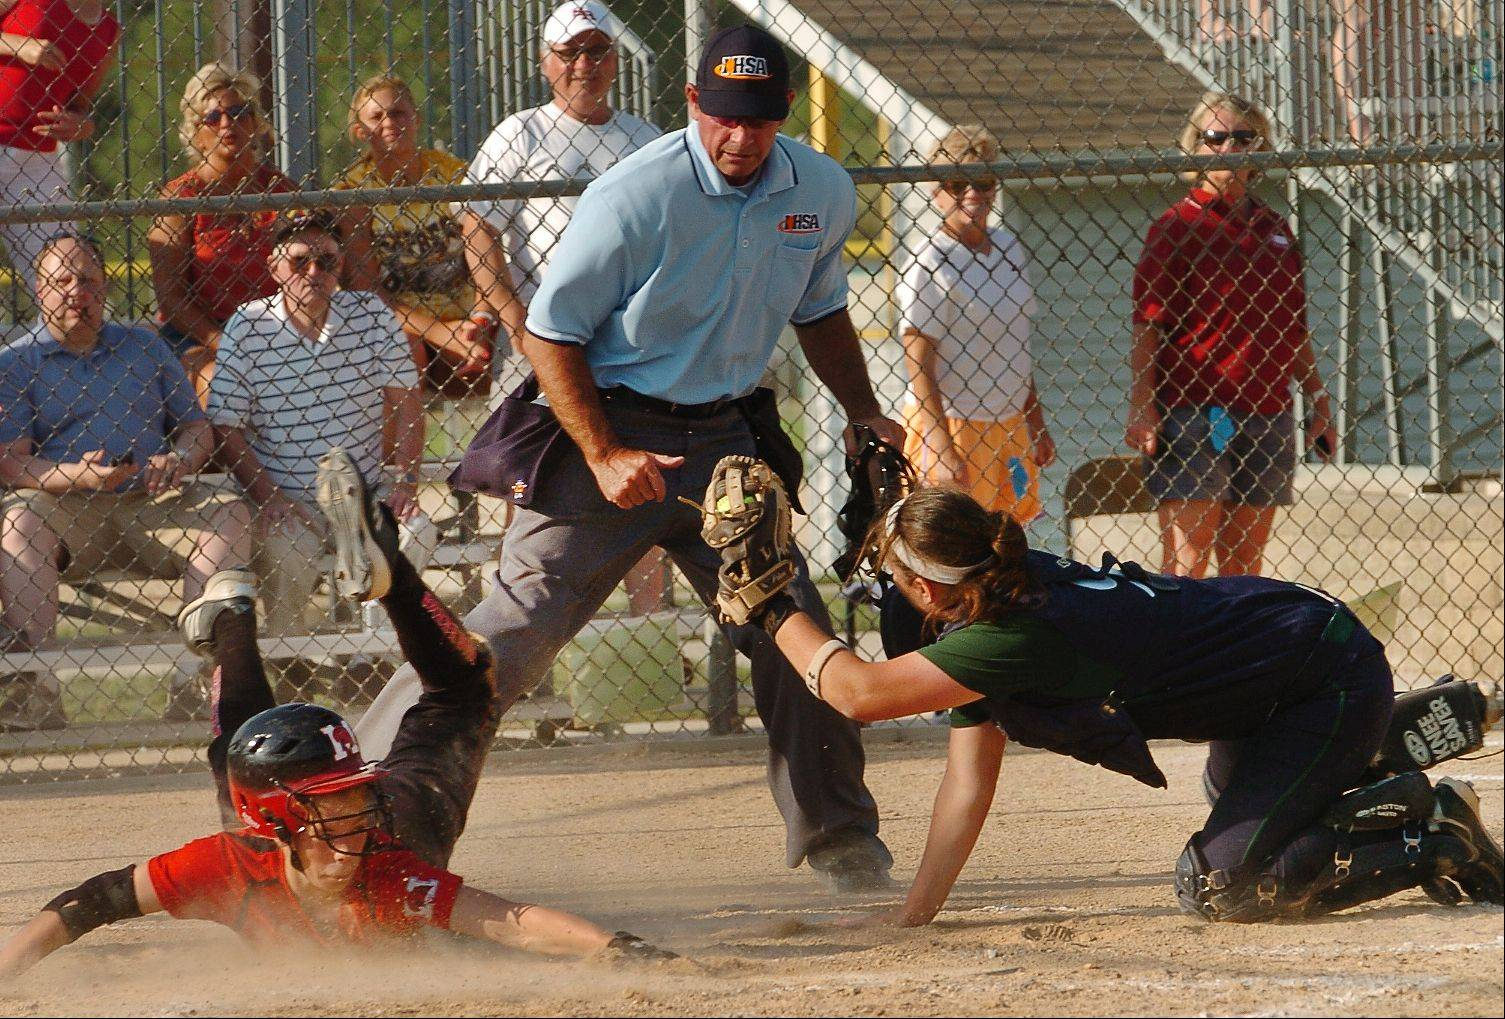 Bartlett catcher Kaylyn Zierke holds on to the ball after tagging out Marist's Nicole Babrowski at the plate in the first inning of the Class 4A softball state championship game between Bartlett and Marist.